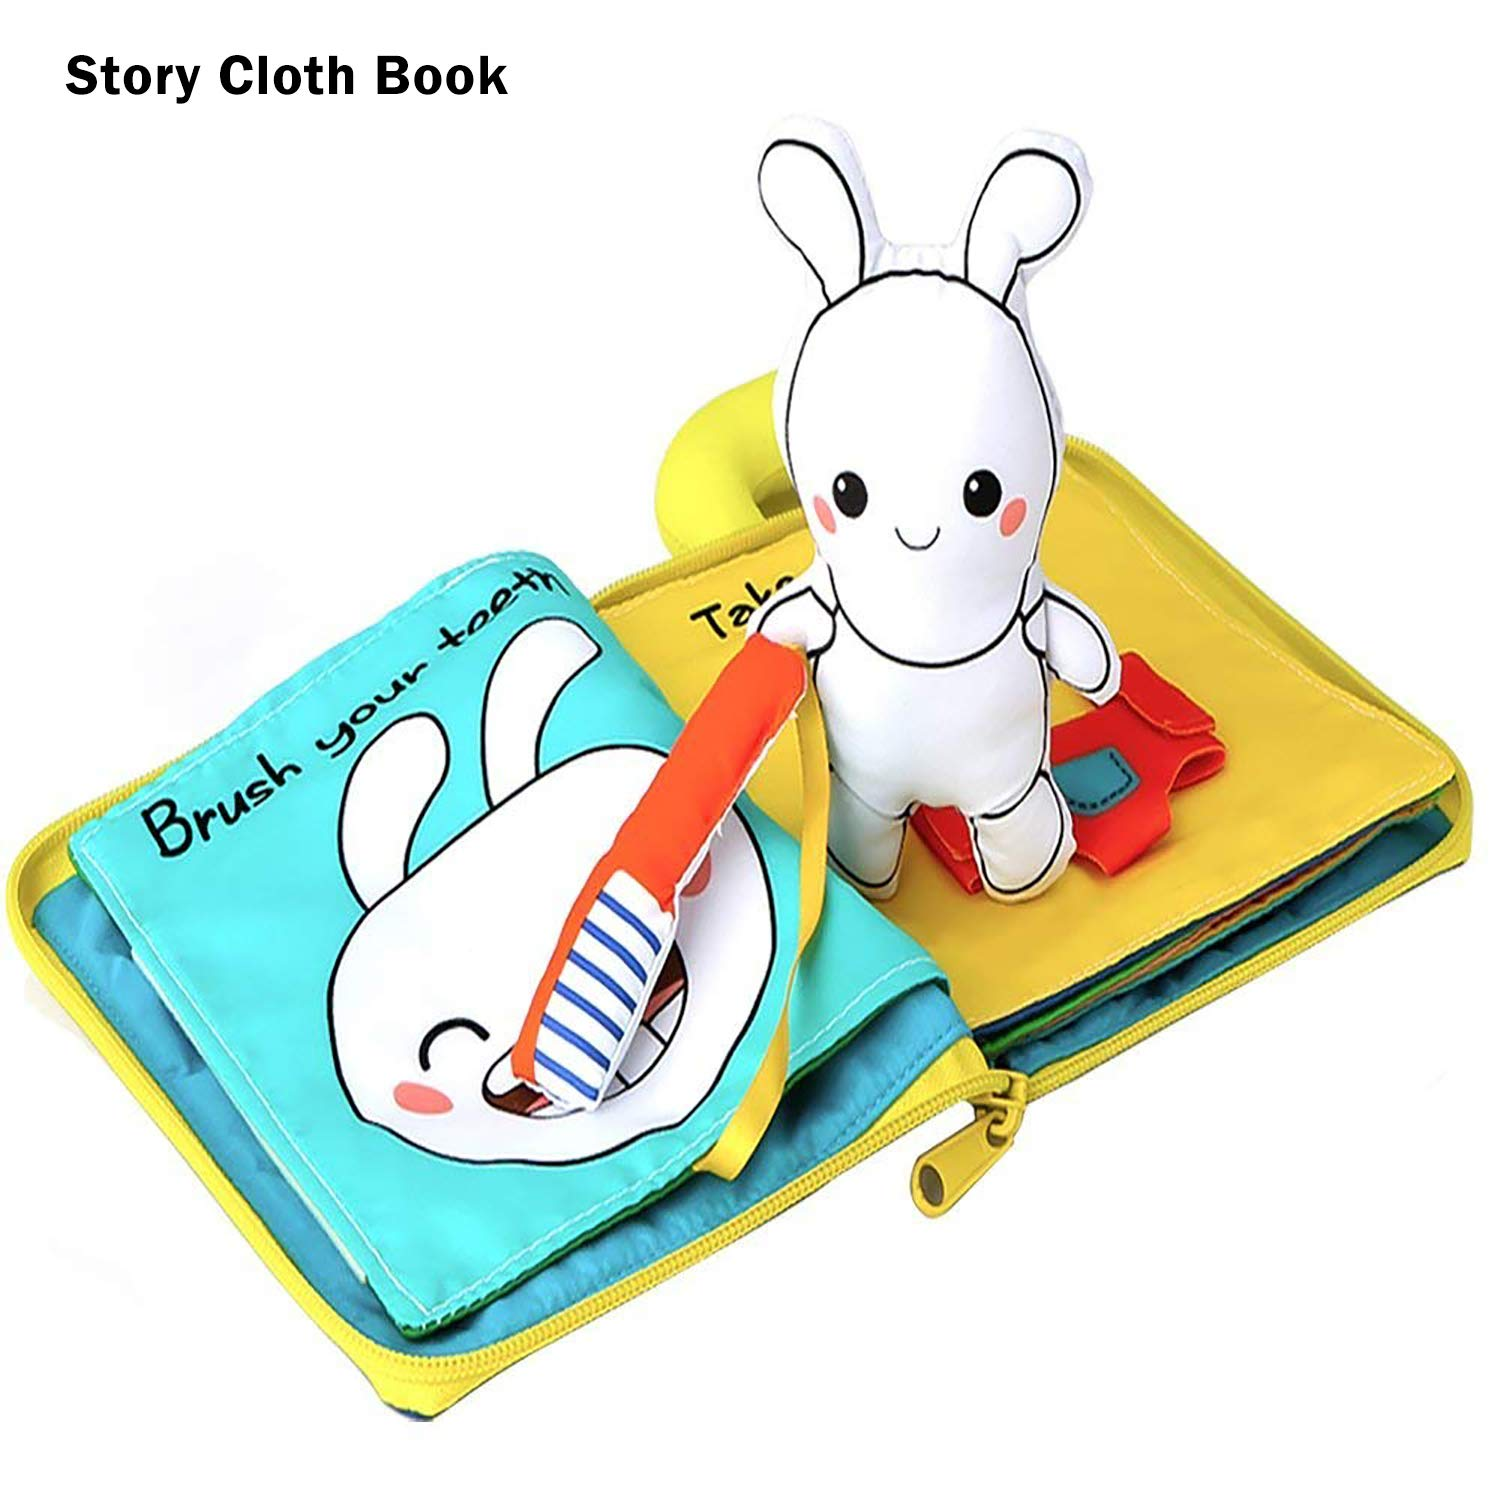 beiens 9 Theme My Quiet Books, Soft Activity Books Nontoxic Fabric Touch and Feel Cloth Books Interactive Sensory First Year 3D Busy Books Toys for Baby, Infant, Toddler, Gift for Baby Shower Birthday